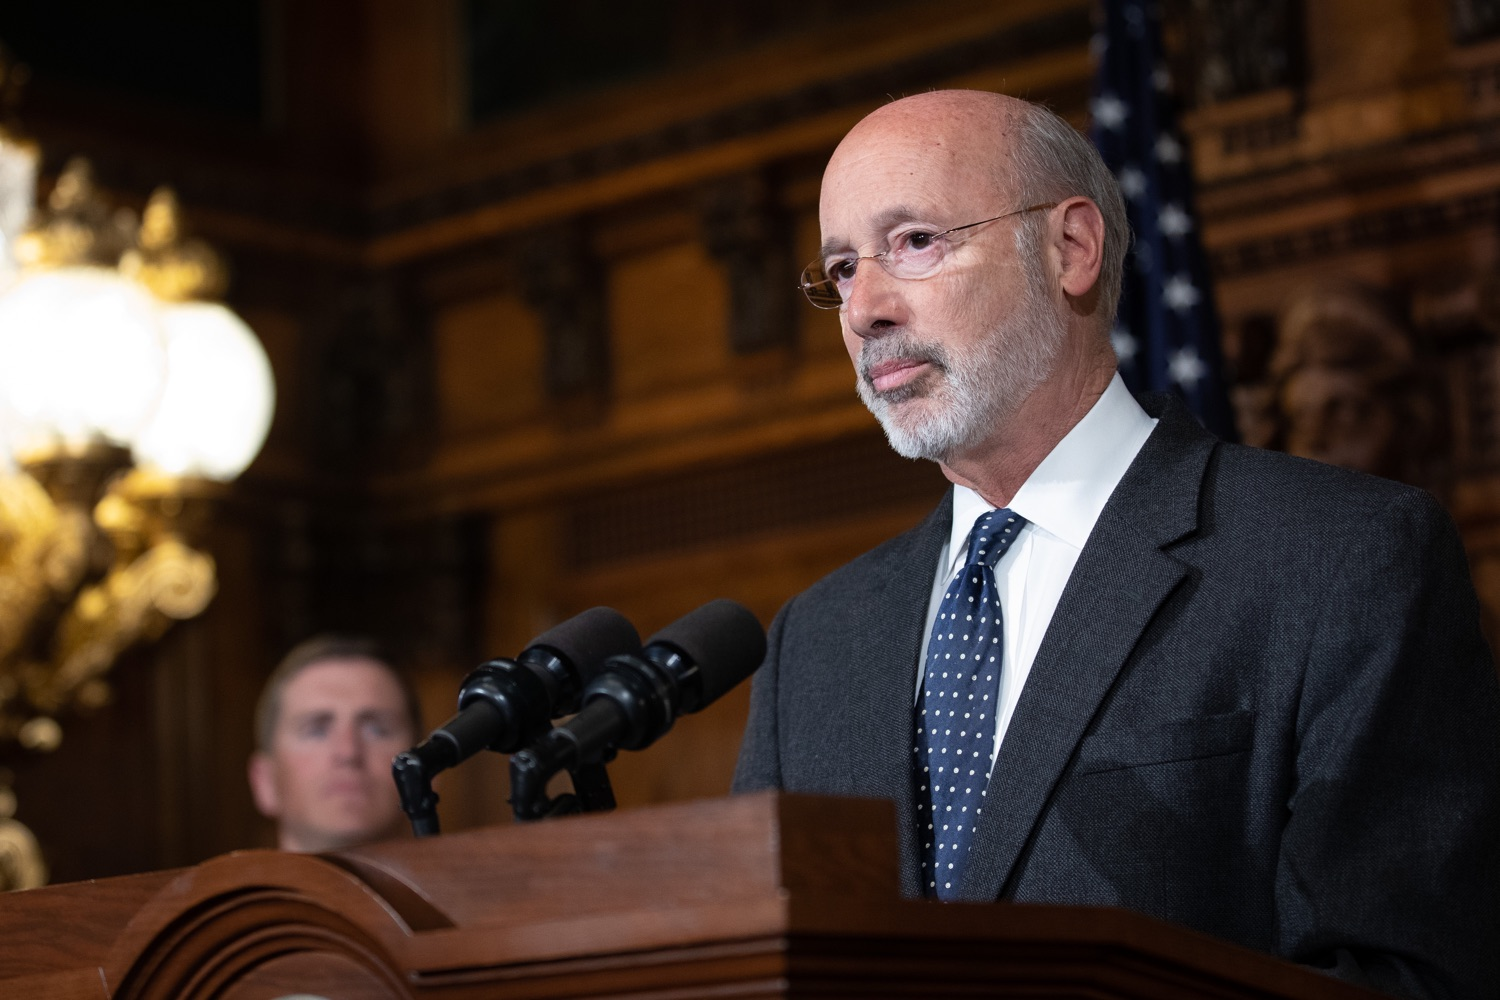 "<a href=""http://filesource.abacast.com/commonwealthofpa/photo/17423_gov_trip_recap_dz_008.jpg"" target=""_blank"">⇣ Download Photo<br></a>Harrisburg, PA  Governor Tom Wolf speaking about his recent visit to Lithuania and Poland.  Governor Tom Wolf today highlighted the second half of his trip abroad, including visiting with more than 500 PA National Guard (PNG) troops in Poland, and honoring the Tree of Life synagogue victims at the Auschwitz-Birkenau Memorial. Tuesday, September 17, 2019"